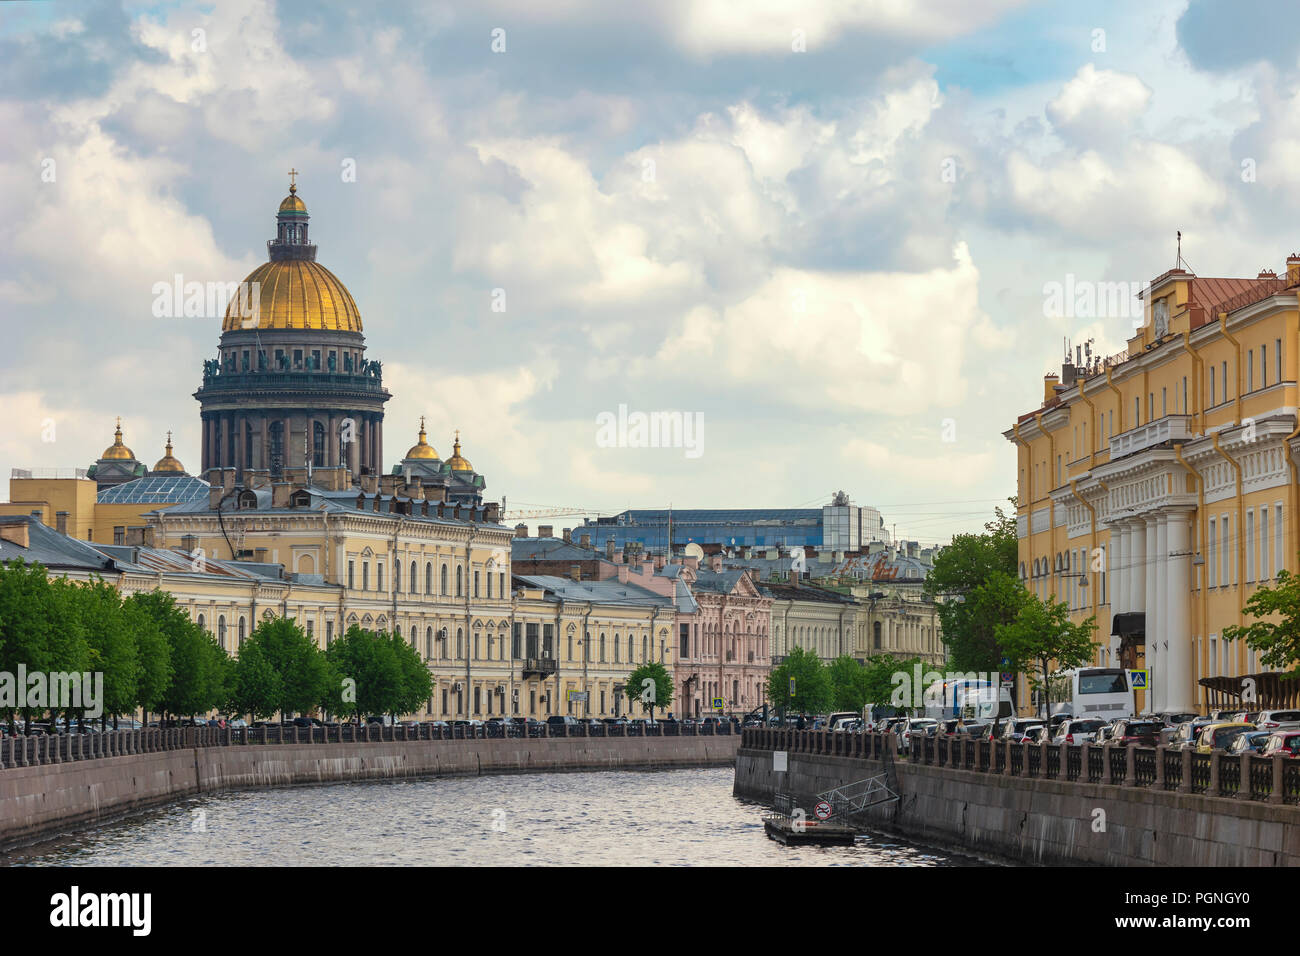 Saint Petersburg city skyline at Saint Isaac Cathedral, Saint Petersburg, Russia Stock Photo